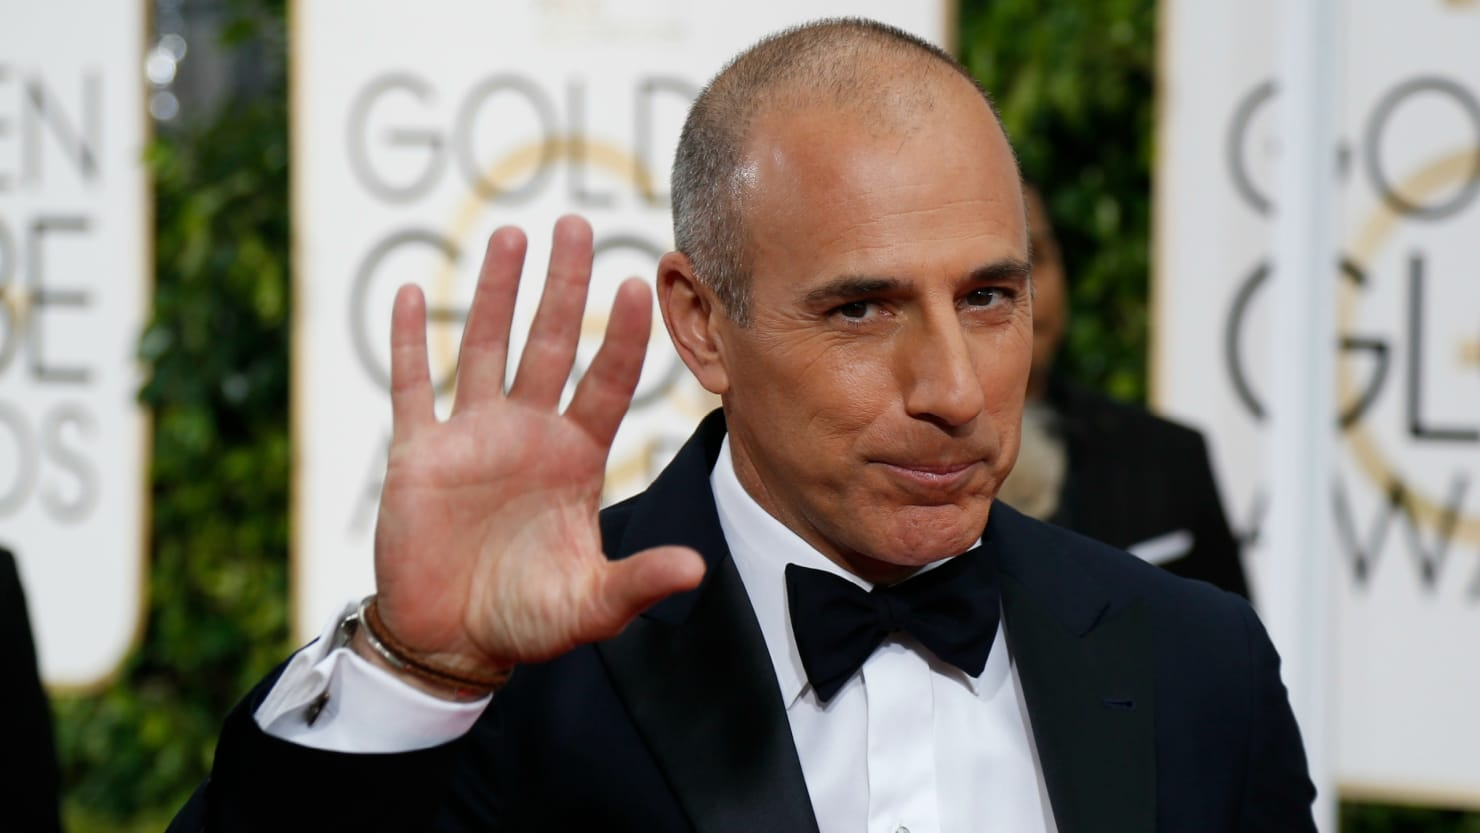 Matt Lauer Sexual Misconduct